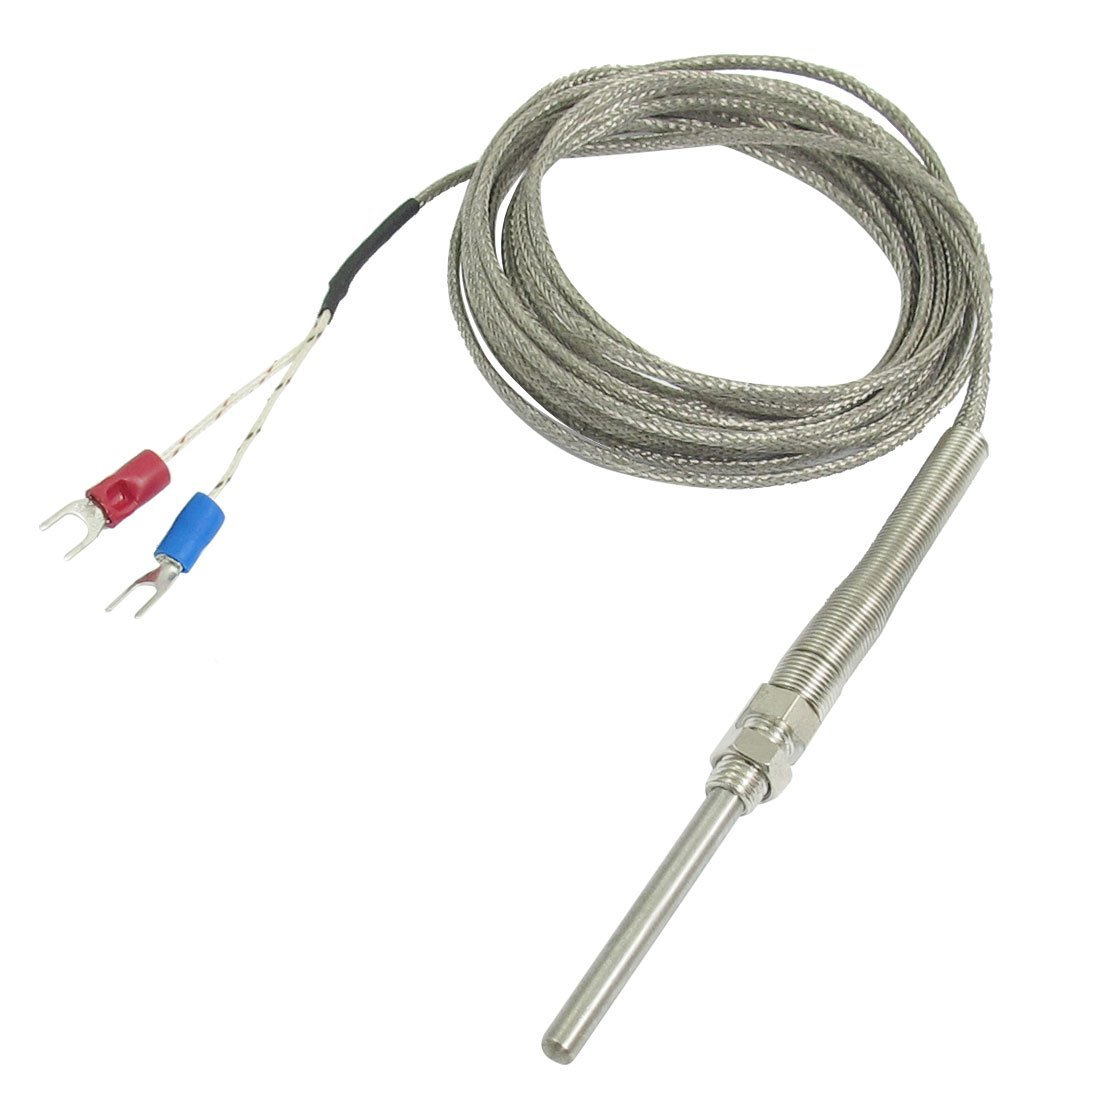 K Type 50x5mm 800C Probe Thermocouple Temperature Sensor Cable 9 8ft 3 Meters